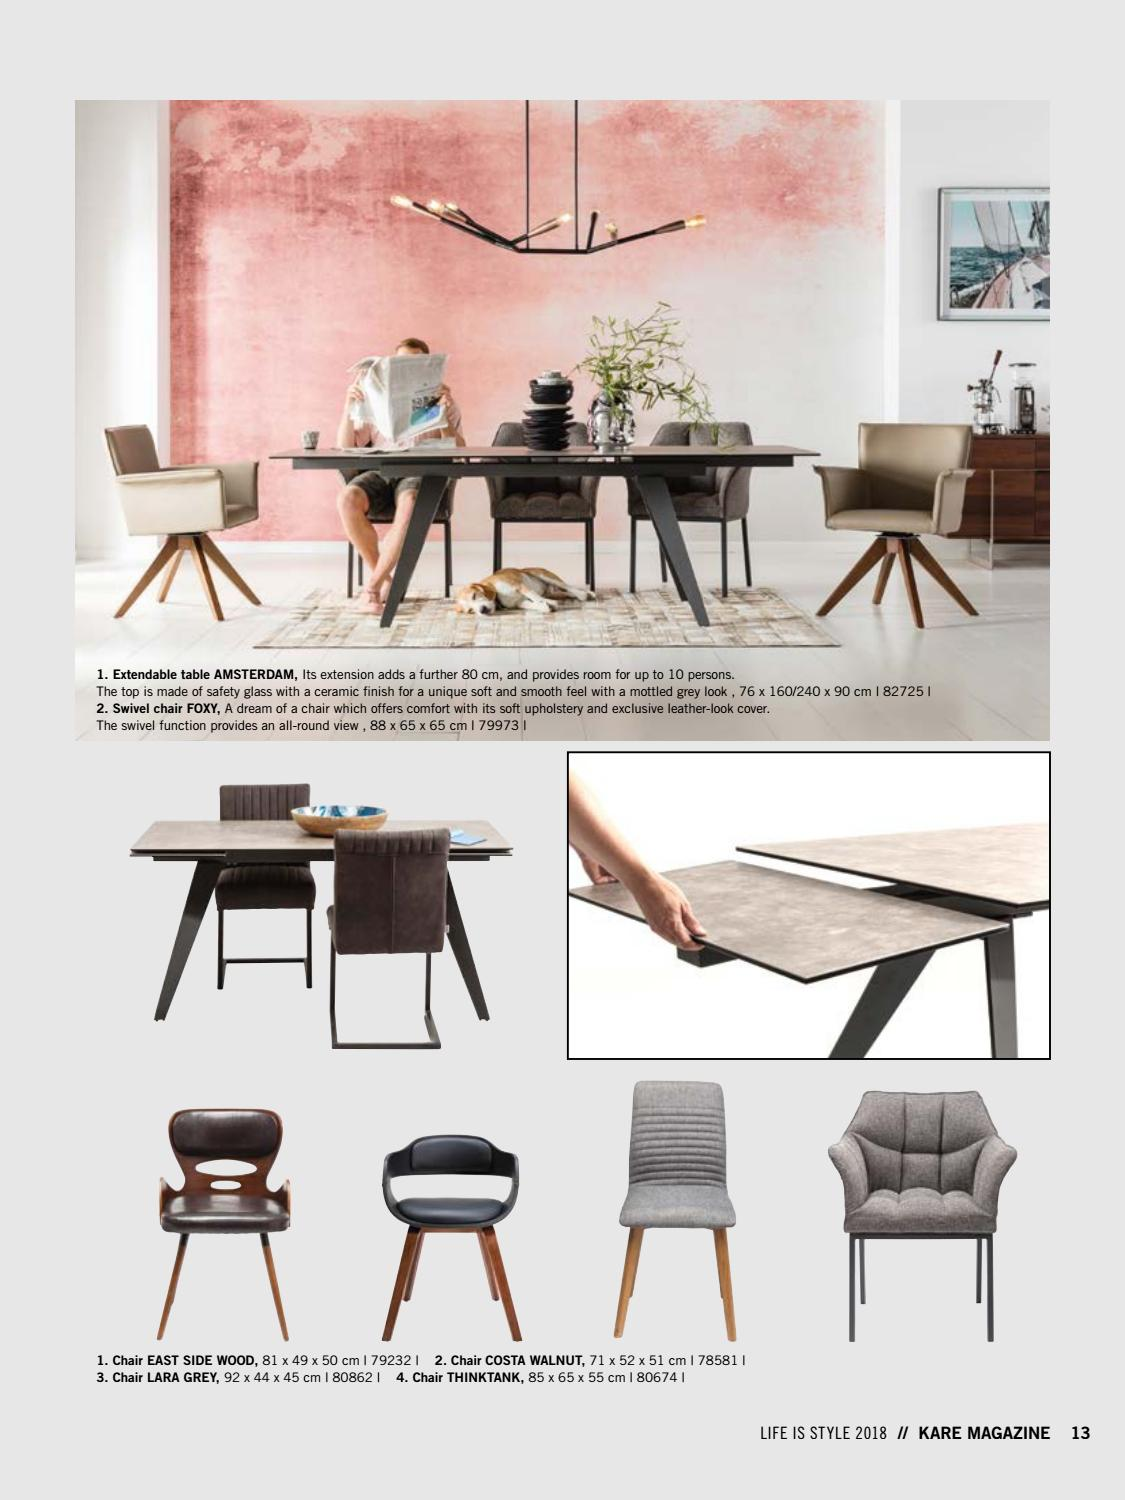 Abitare Ad Amsterdam kare design - life is style 14/2018 by abitare living - issuu